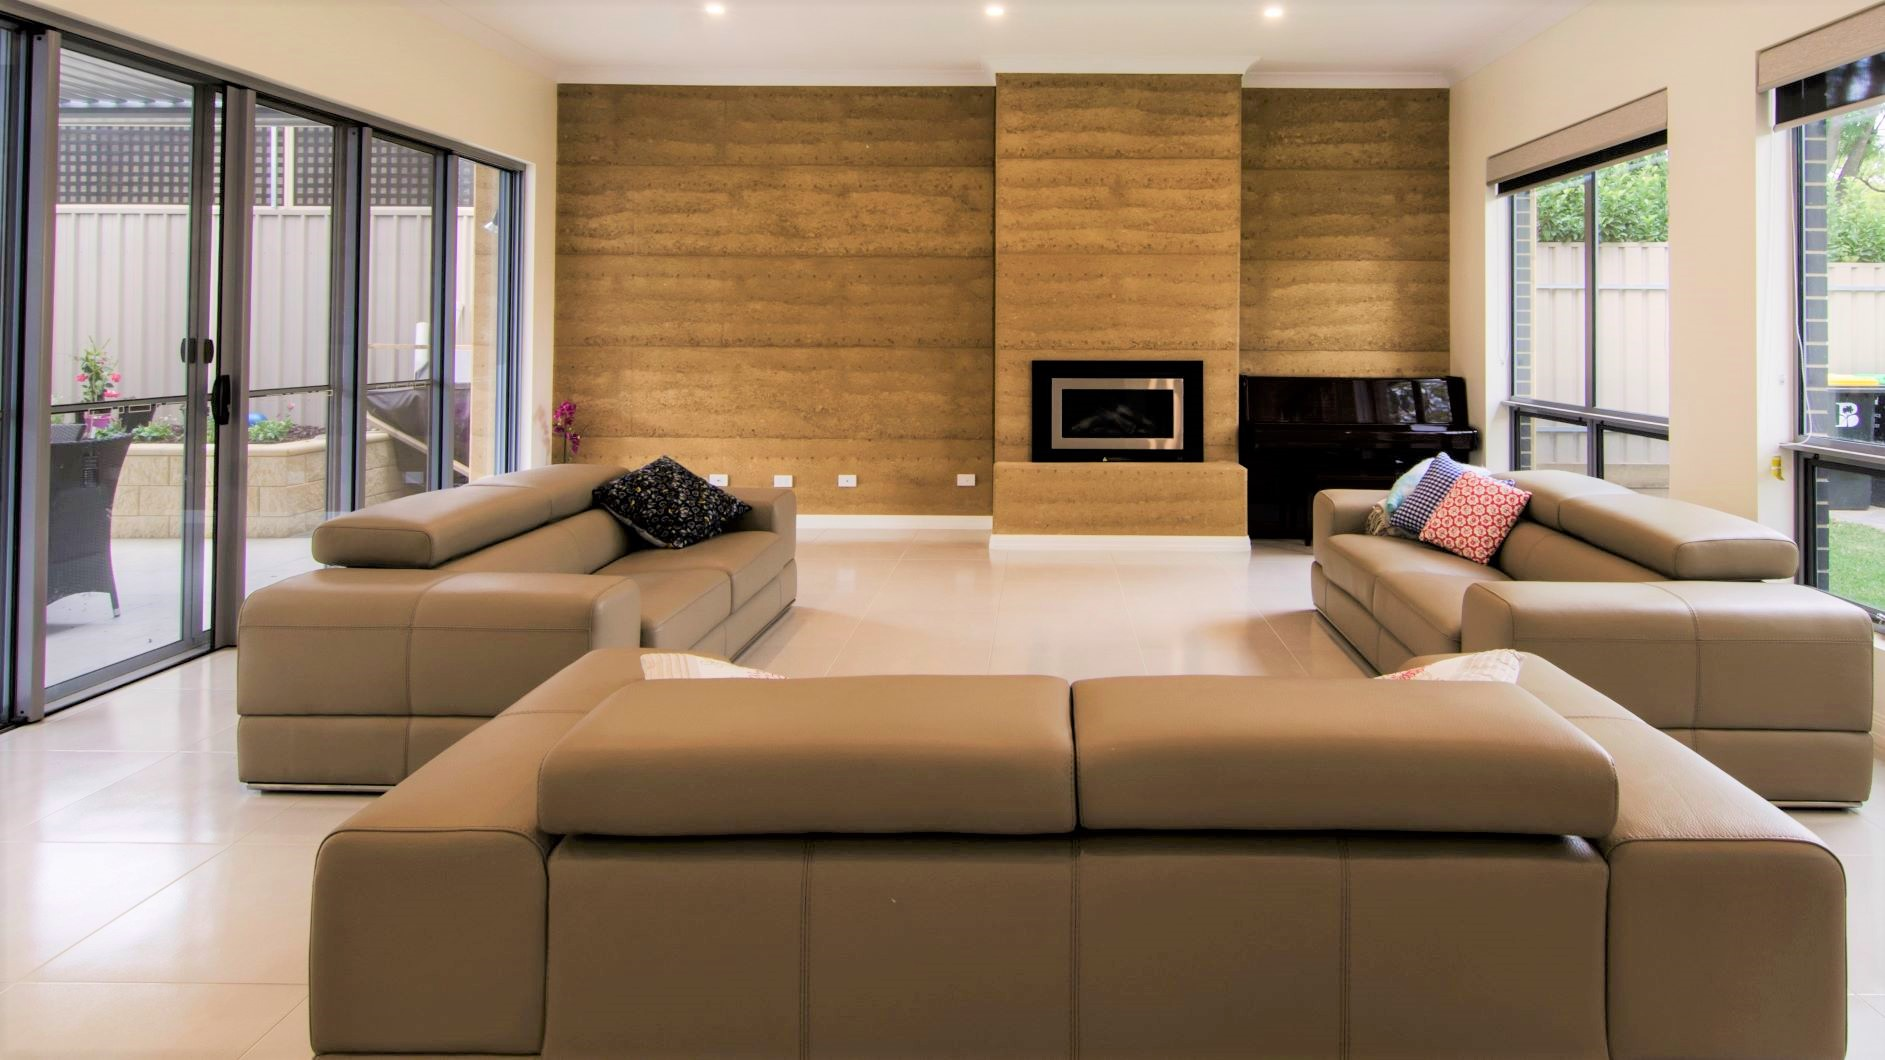 Custom Home, New Home, Family Home, Builders, Design, Tusmore, Adelaide, Two Storey, Large Windows, Feature Wall, Fireplace